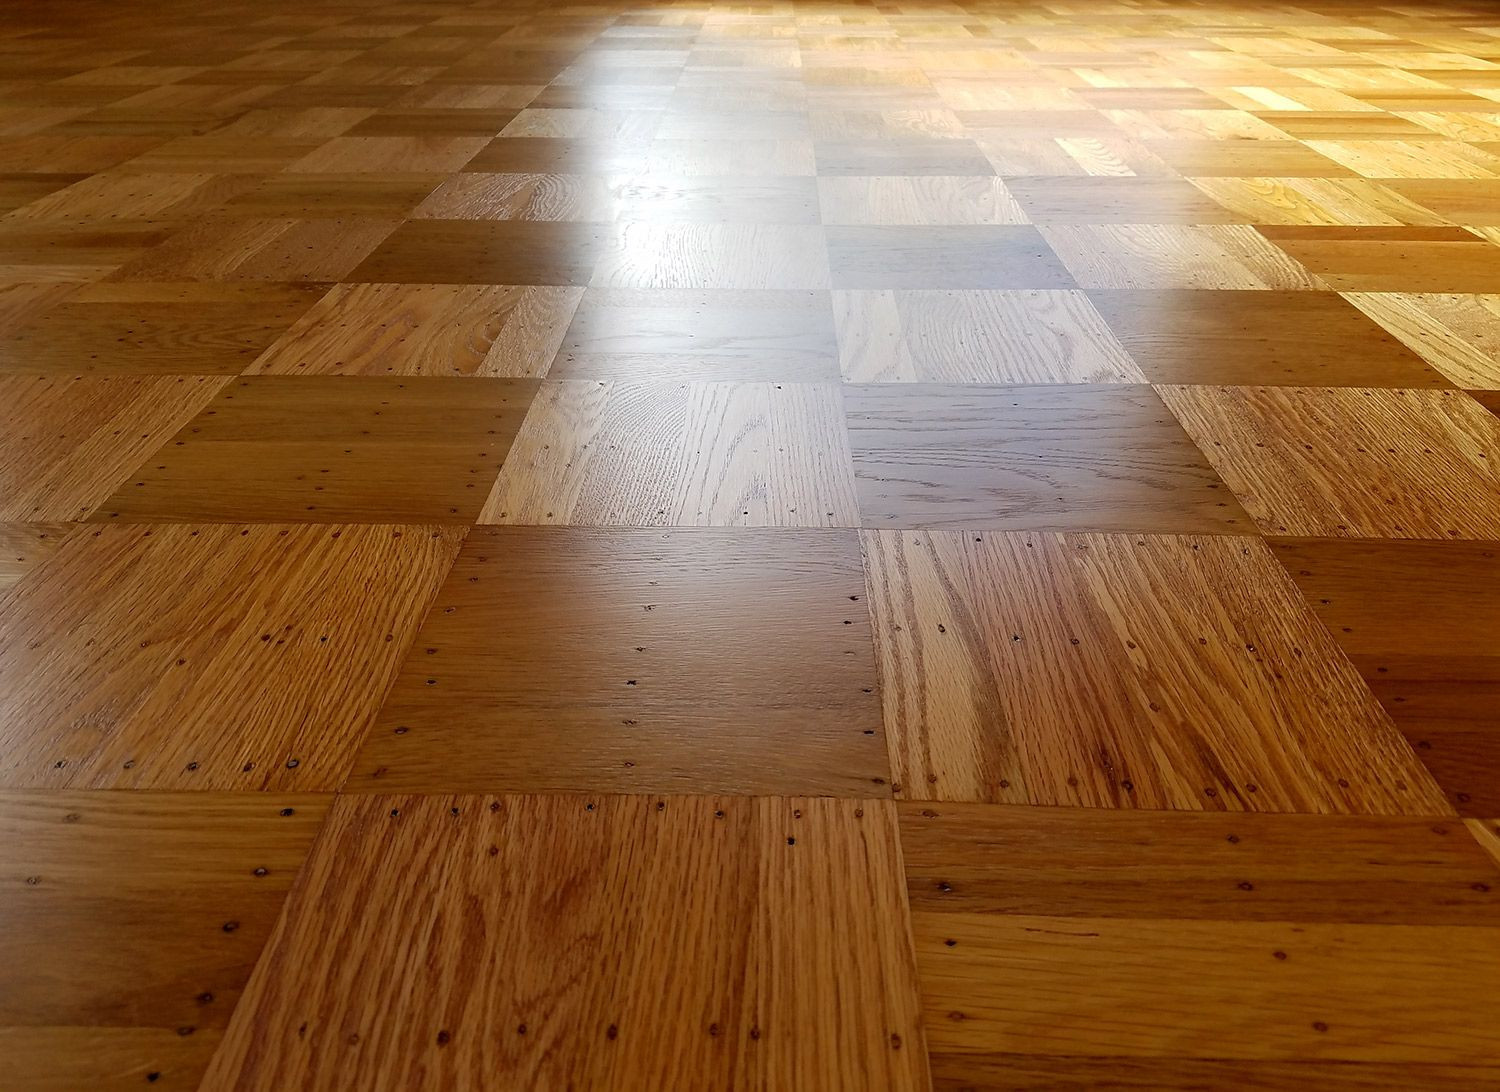 refinishing hardwood floors after carpet of how refinish wood floors inspirational 50 best refinished hardwood with regard to how refinish wood floors beautiful refinishing oak parquet floors refinish of how refinish wood floors inspirational